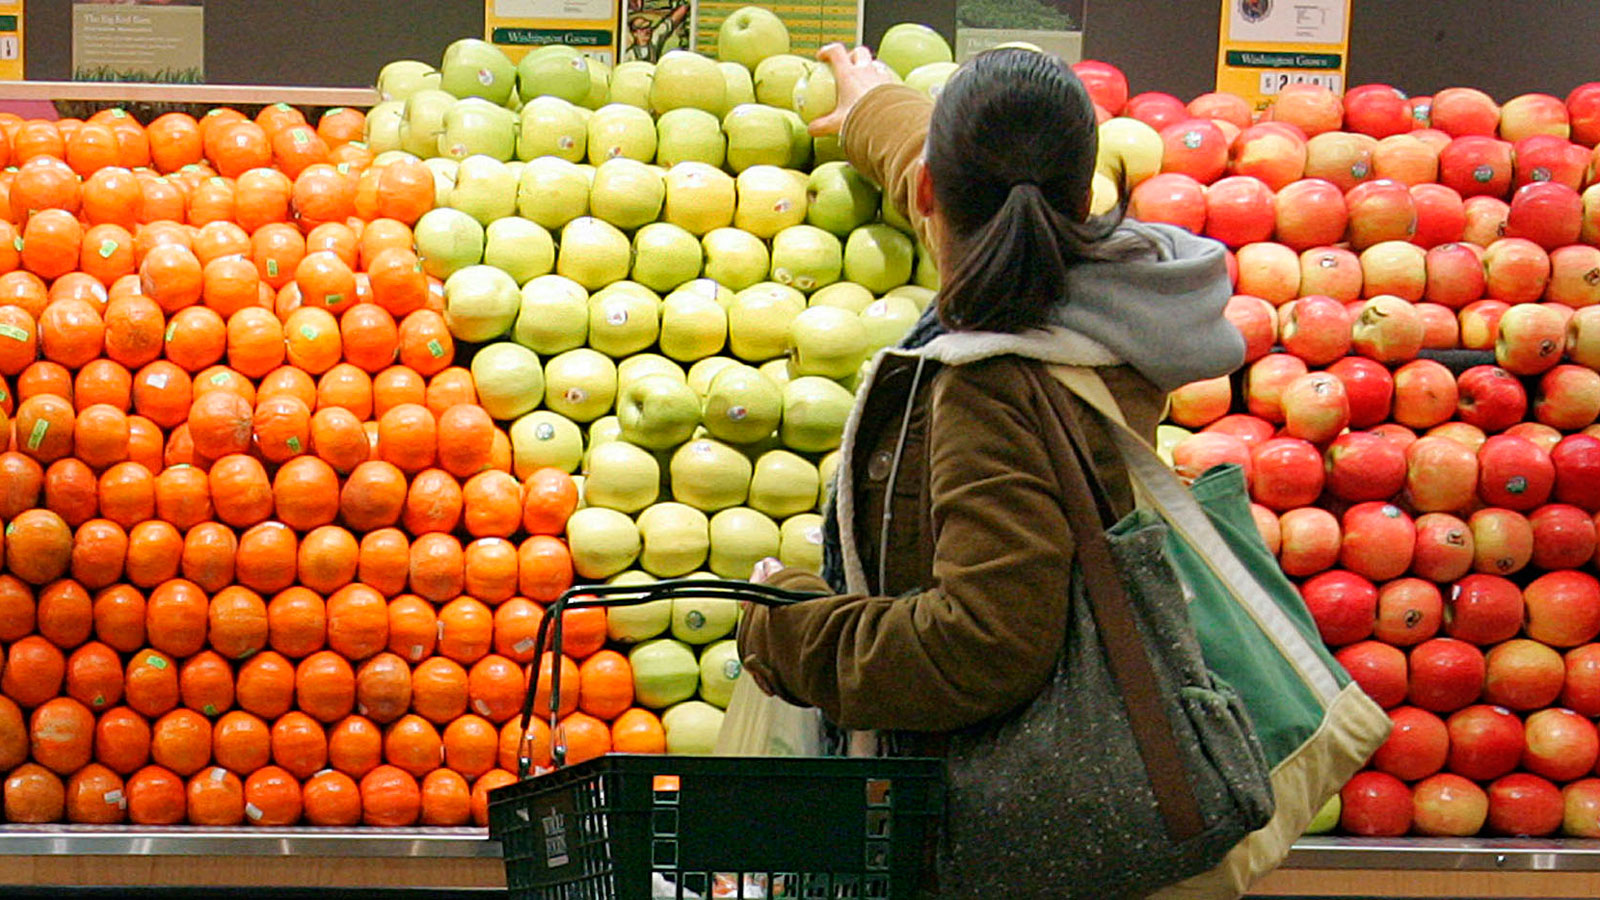 whole-foods-unfavorable-FT-BLOG0517.jpg